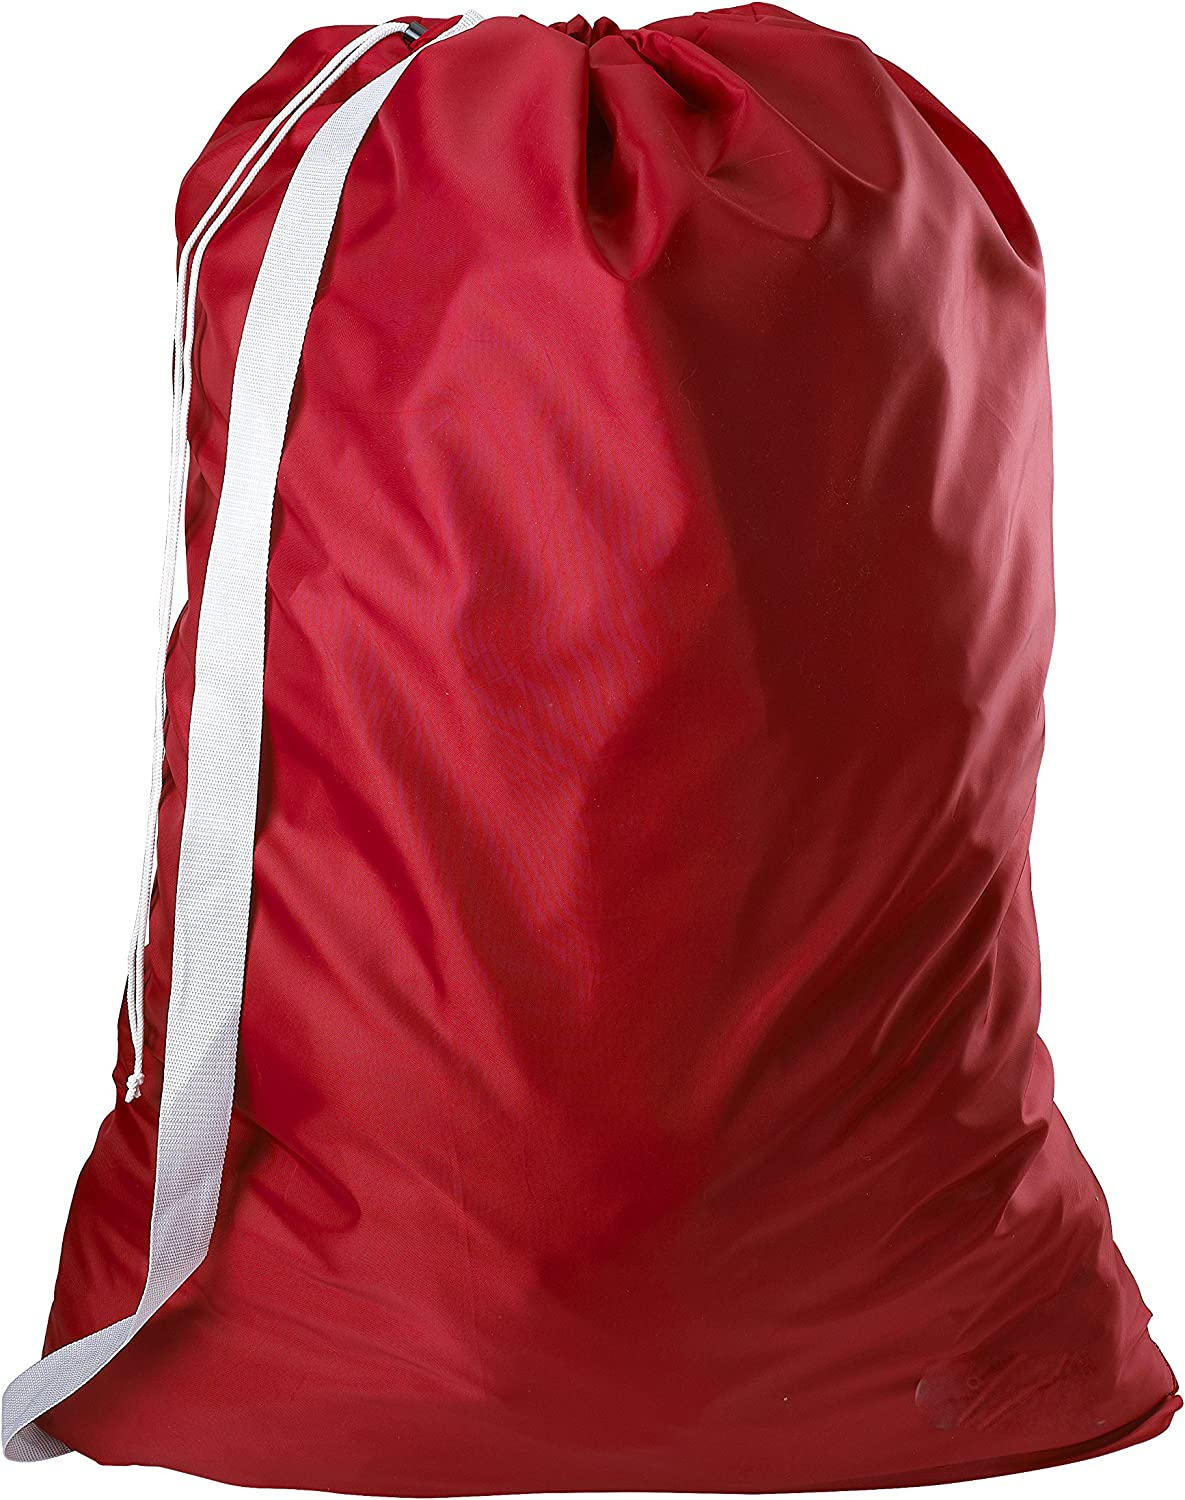 "Nylon Laundry Bag with Shoulder Strap, Red - 30"" X 40"" - Commercial Grade 100% Nylon, Designed for Heavy Duty Use, College Laundry Bags, Laundromat and Household Storage - Made in The USA"